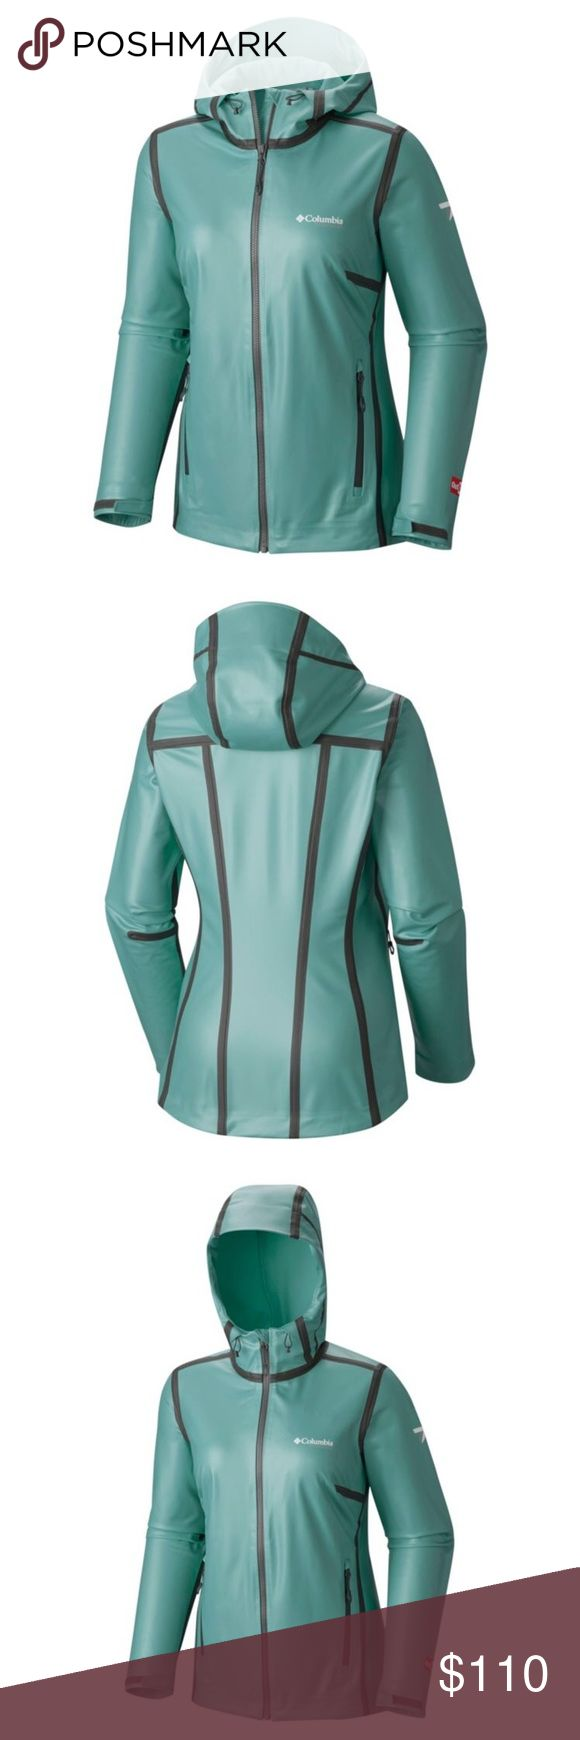 Columbia OutDry Ex Stretch Hooded Shell Brand new with tags! Authentic Columbia Sportswear Women's OutDry Ex Stretch Hooded Shell in Teal. Size Small. Style #1713091. Active fit and perfect for winter, according to the website. Retails for $180 plus tax. Unfortunately, I'm not taking modeling requests at the moment. Ignoring all trade requests! Reasonable offers always accepted! ⭐️ Columbia Jackets & Coats